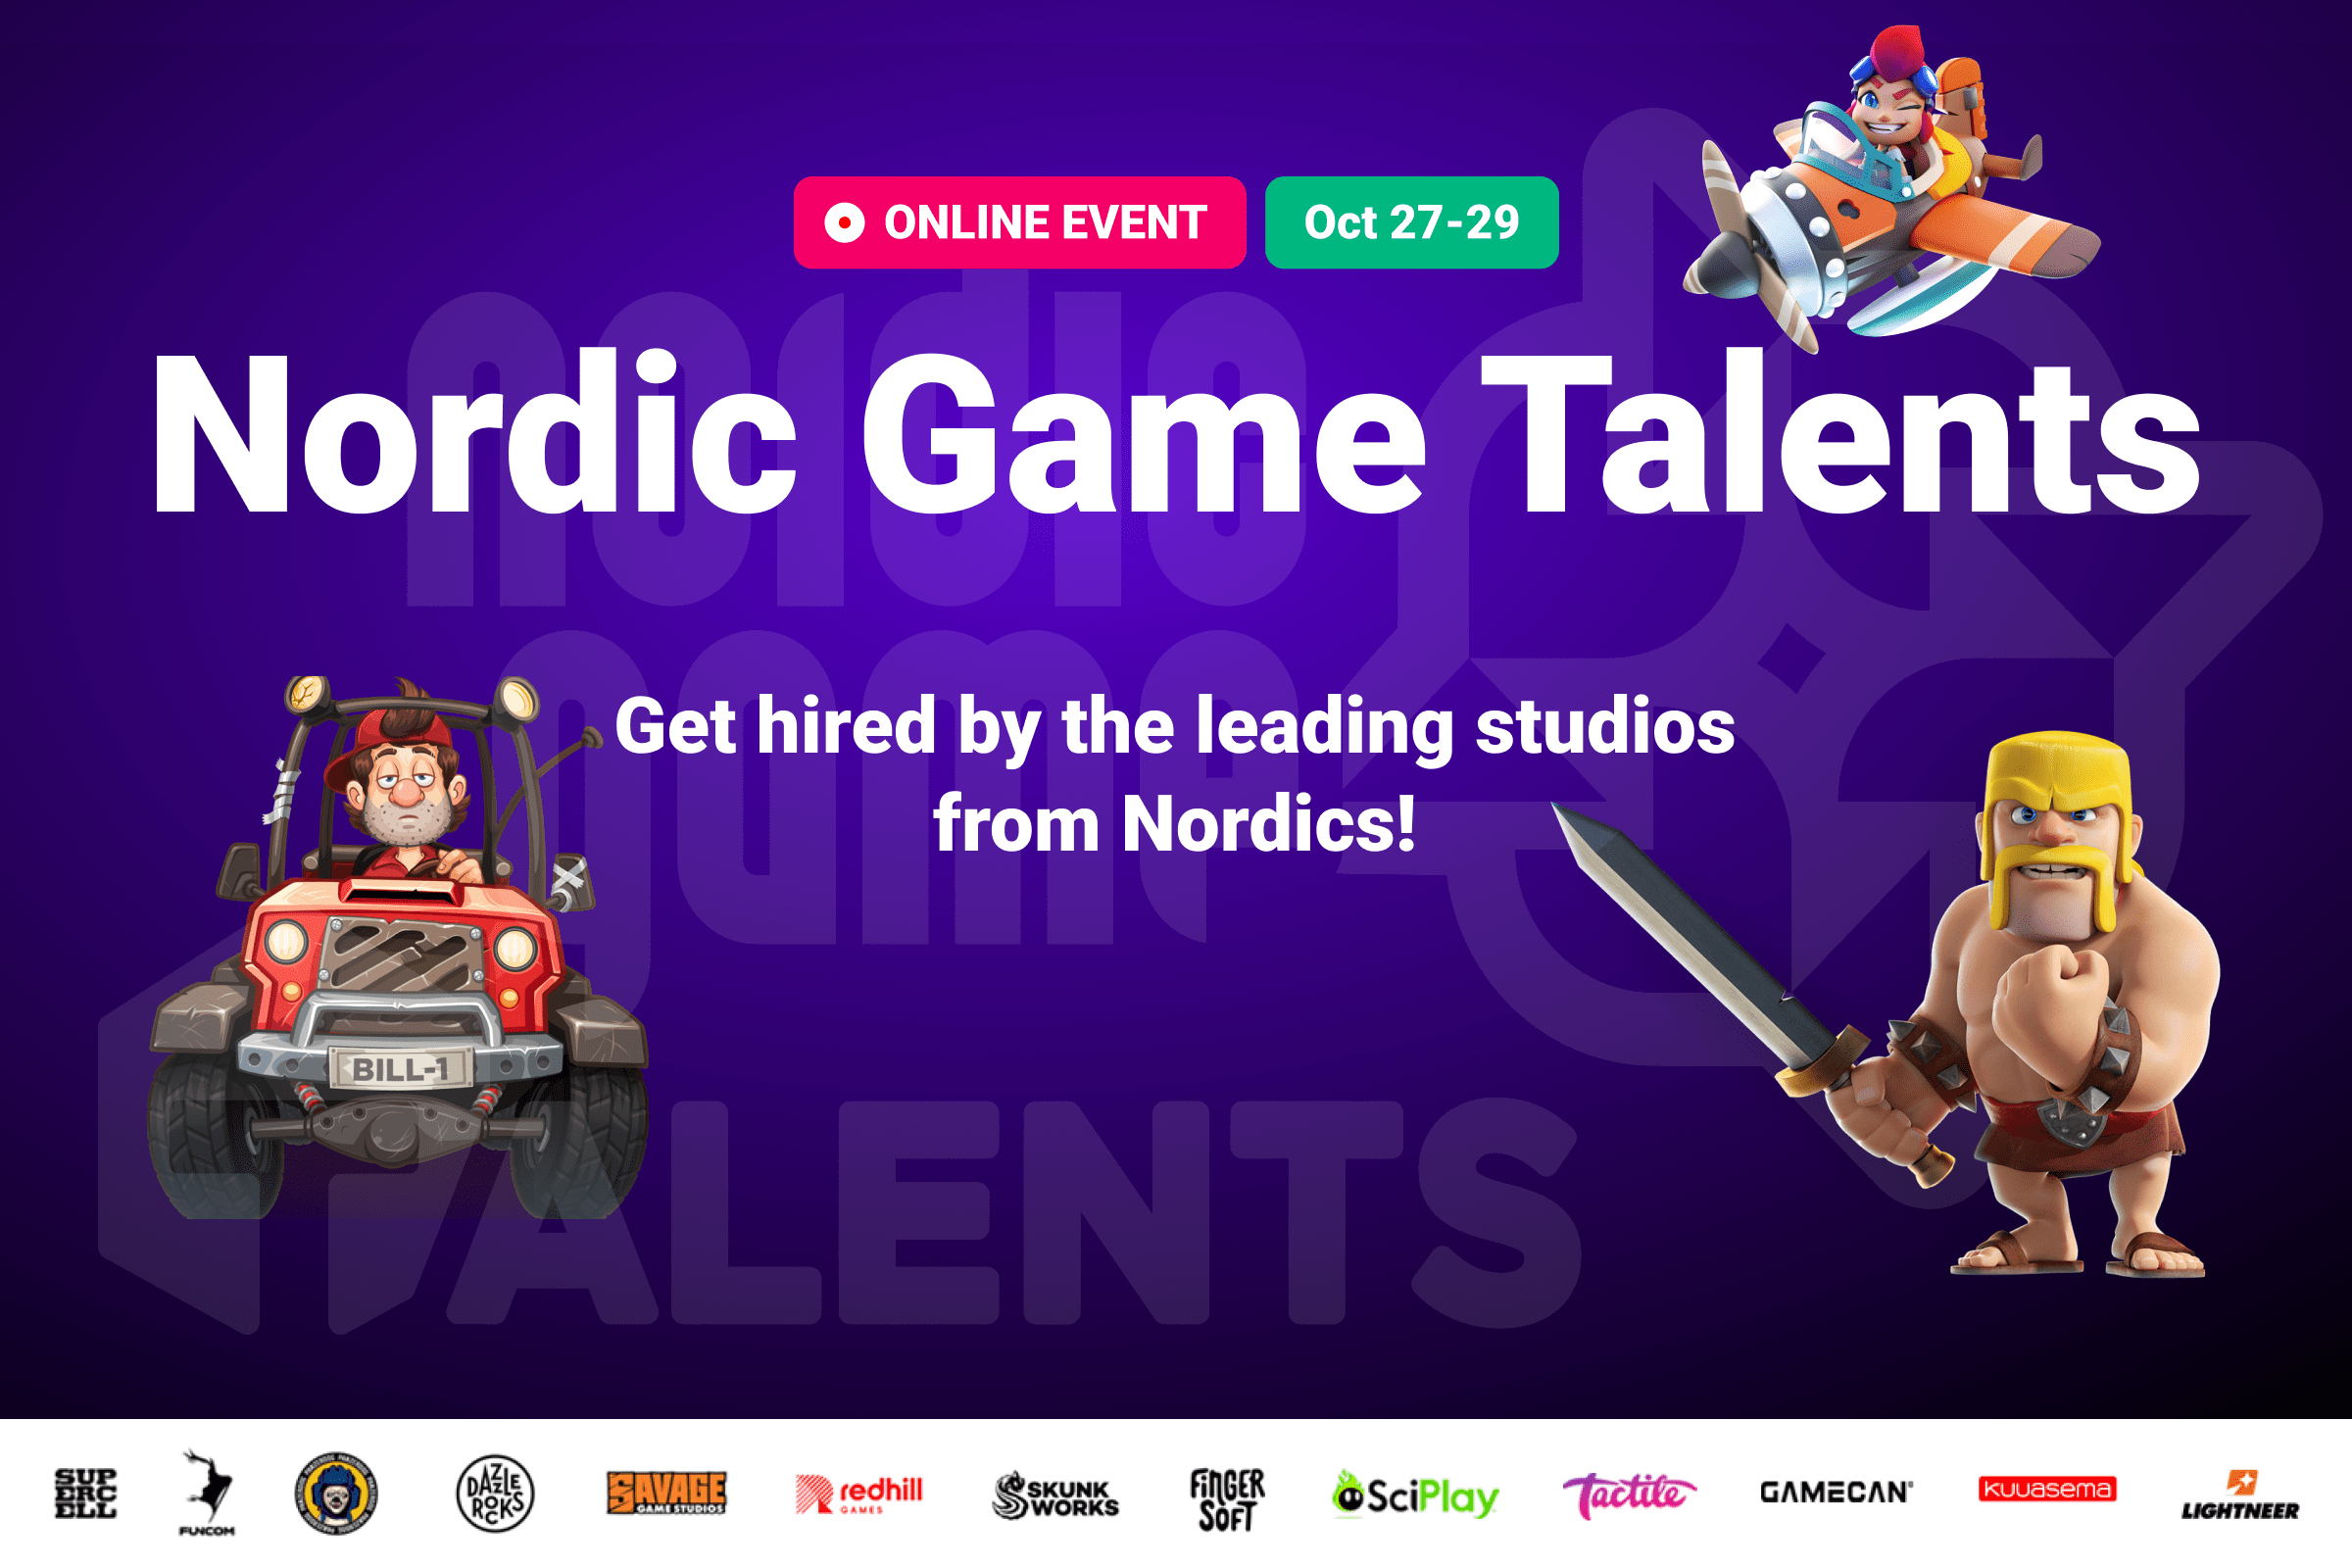 games-factory-talents-has-teamed-up-with-nordic-game-to-bring-you-nordic-game-talents.